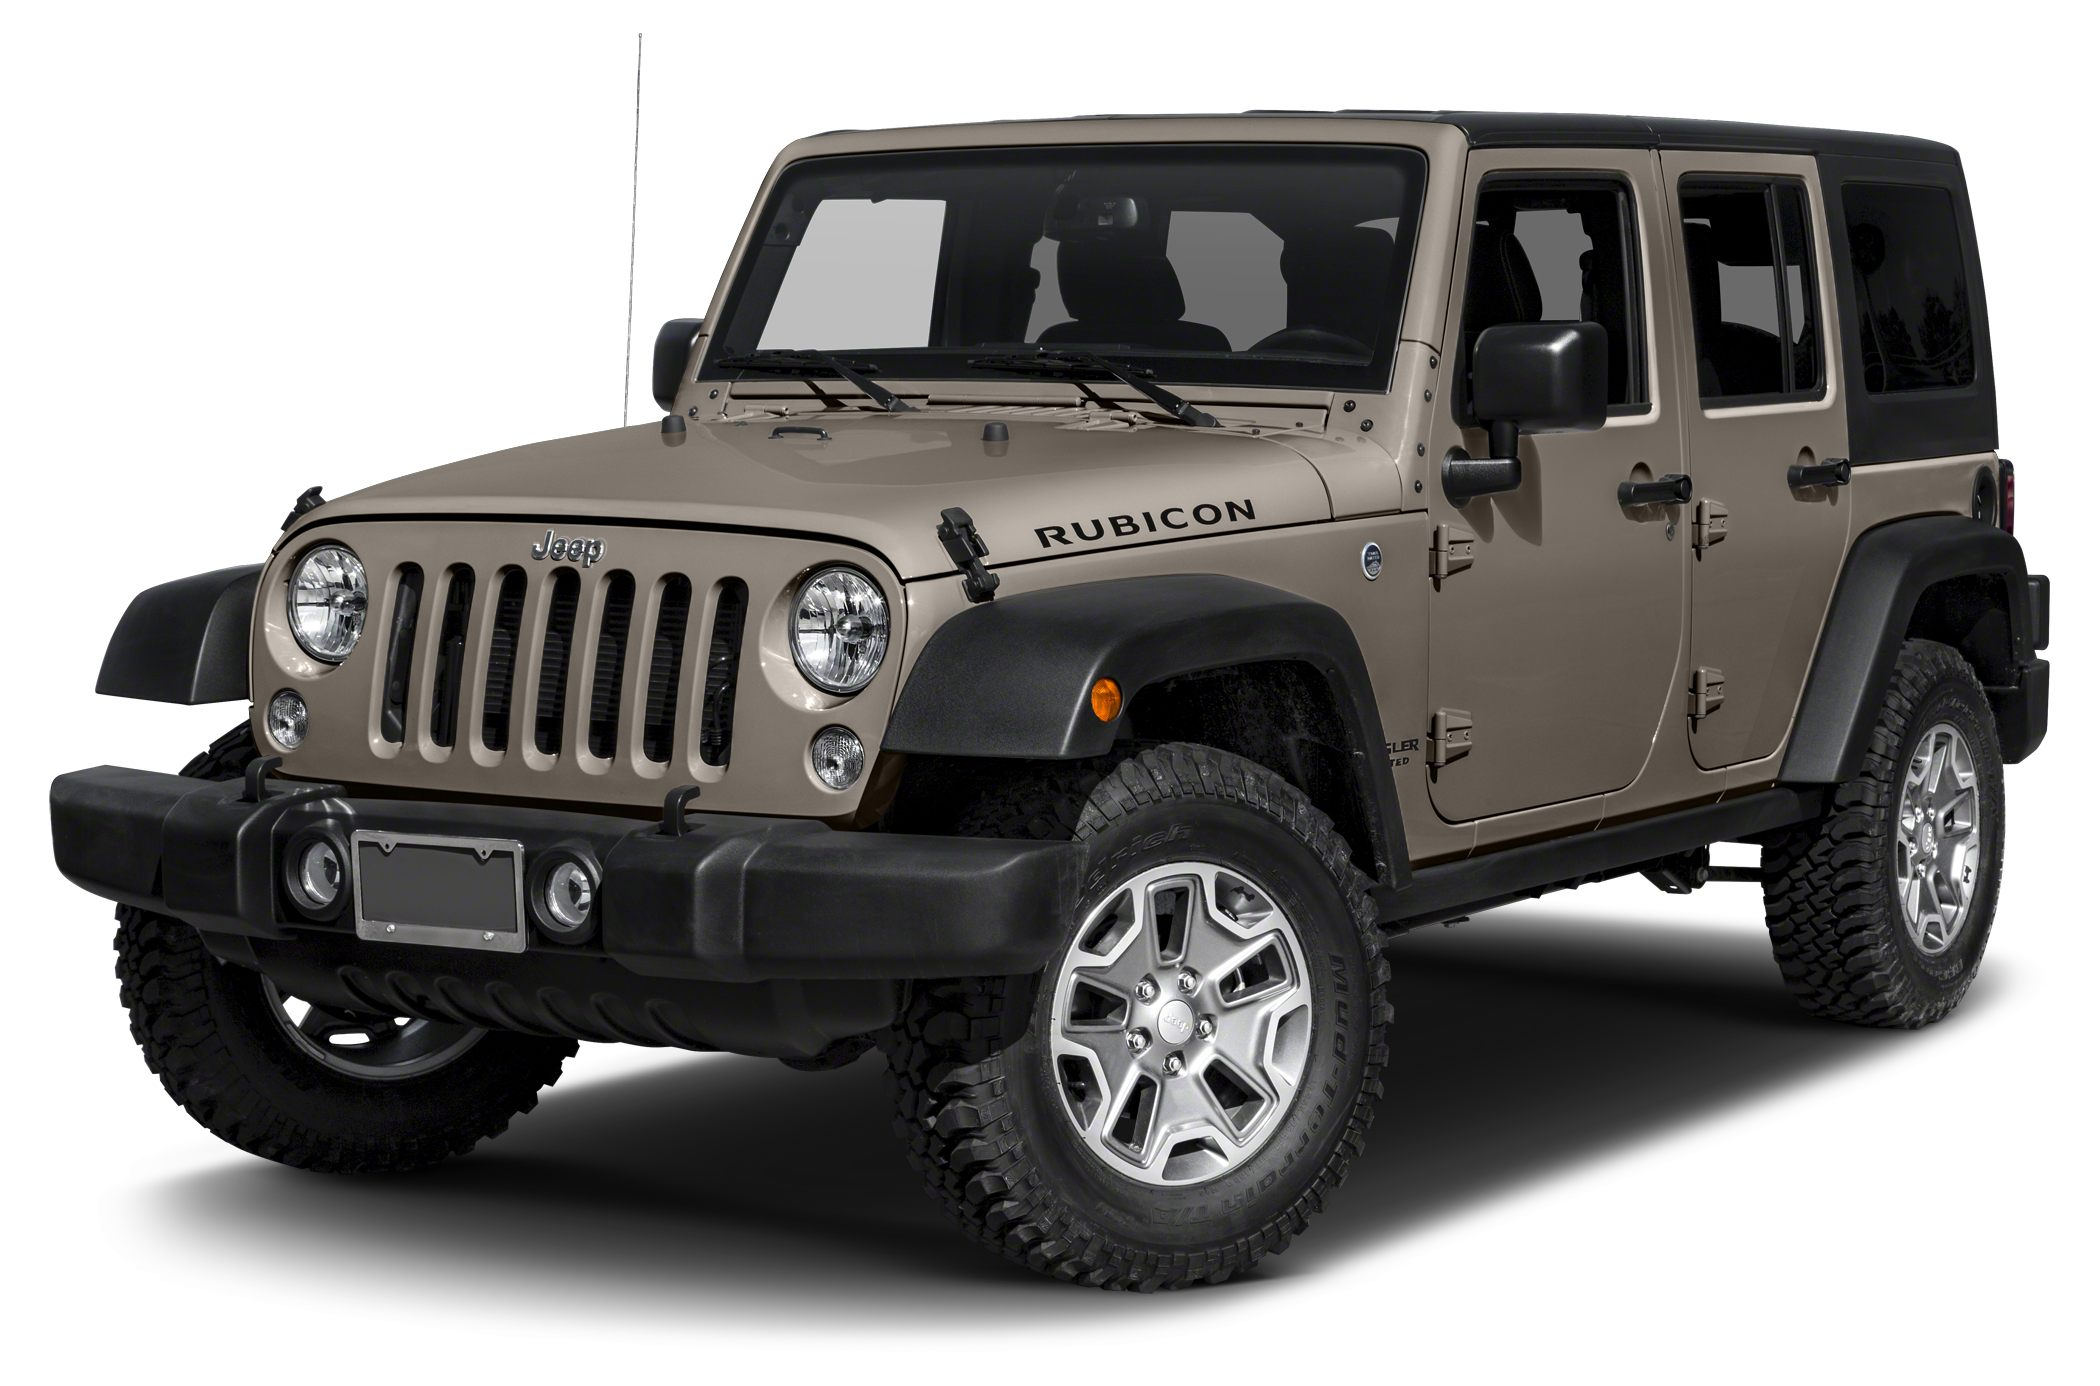 2014 Jeep Wrangler Rubicon >> 2014 Jeep Wrangler Unlimited Rubicon 4dr 4x4 Pricing And Options